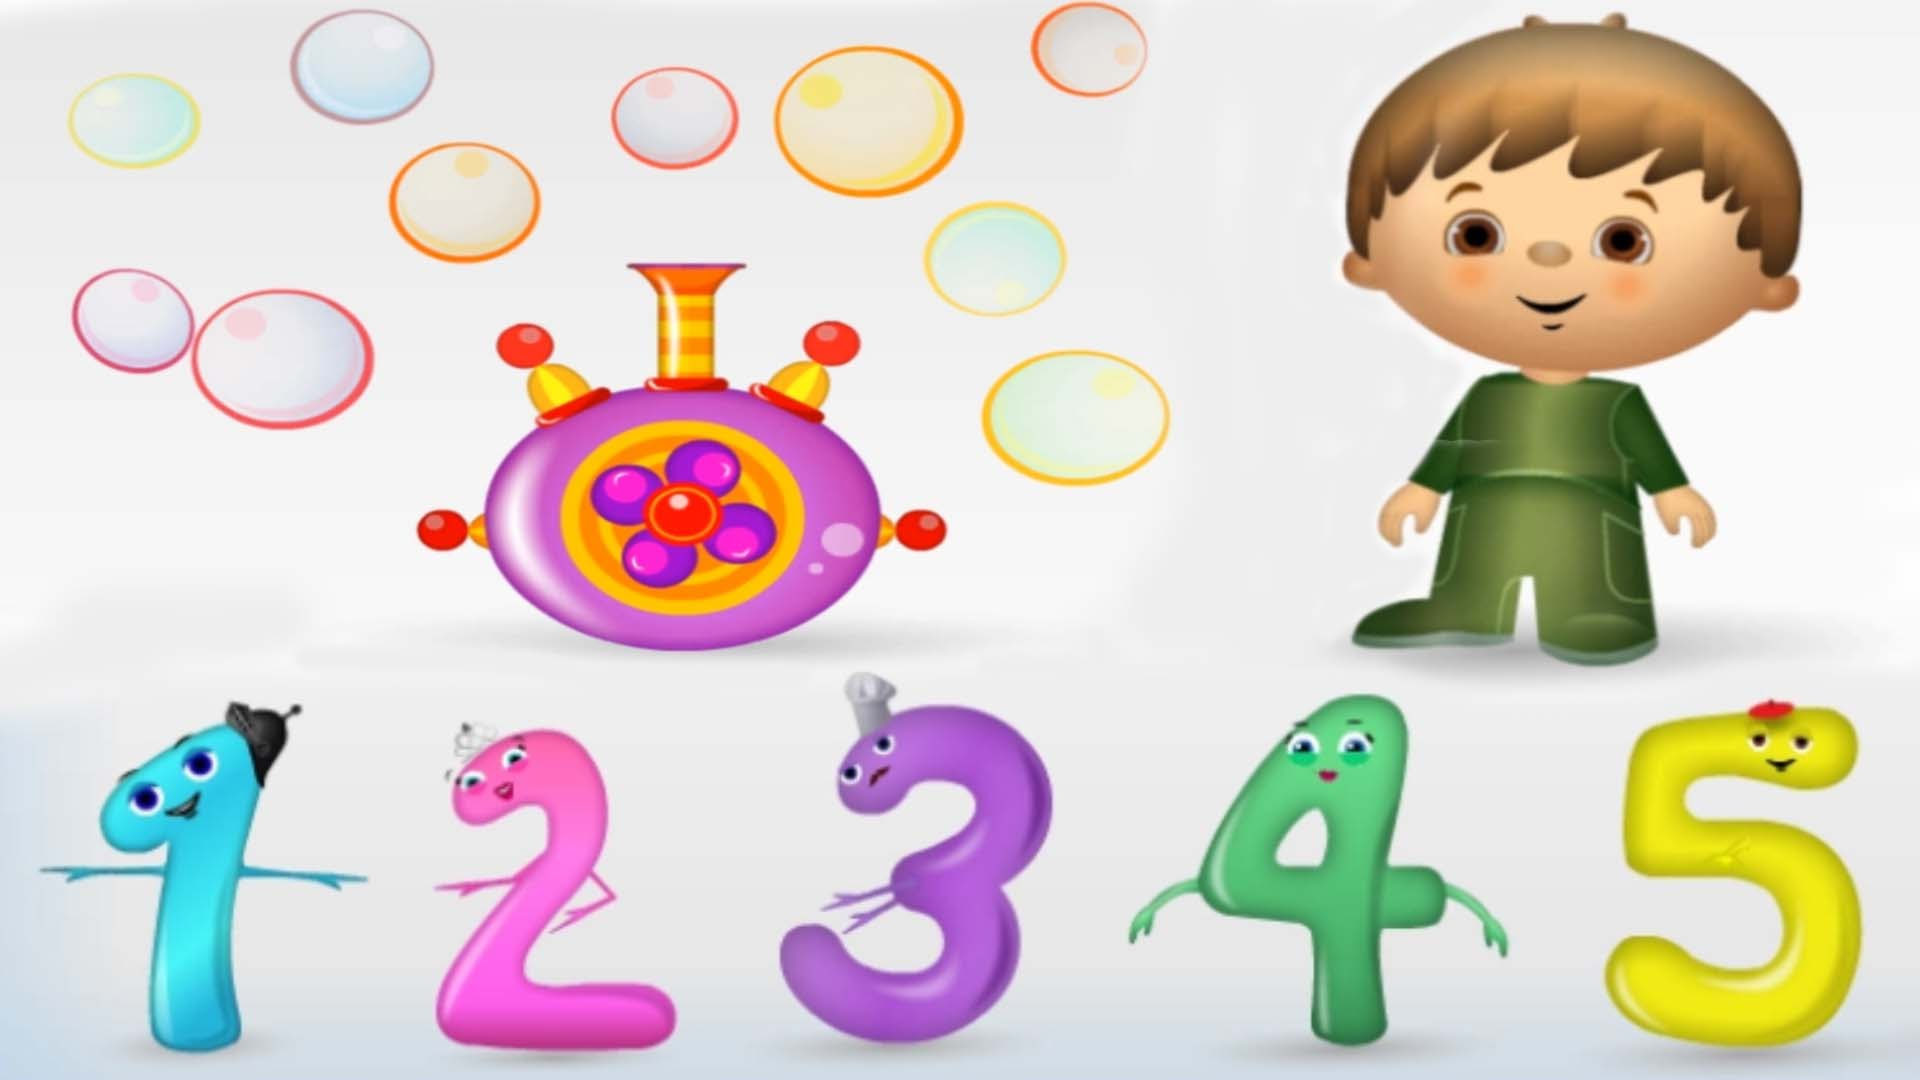 Gaming clipart number game. Numbers for kids counting